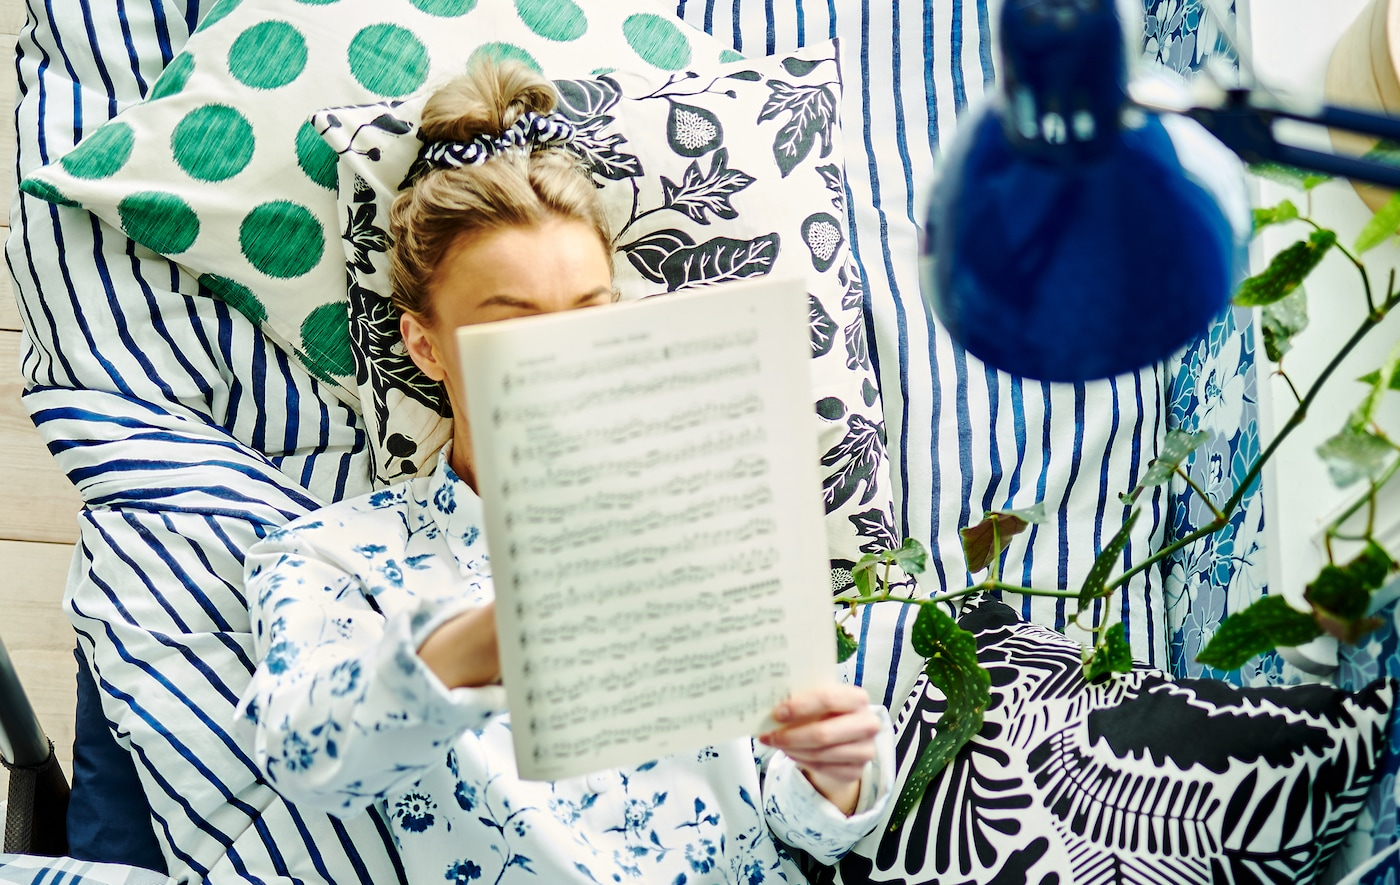 A woman lying in bed with cushions, bed linen and wallpaper with different patterns around her, while reading musical notes.